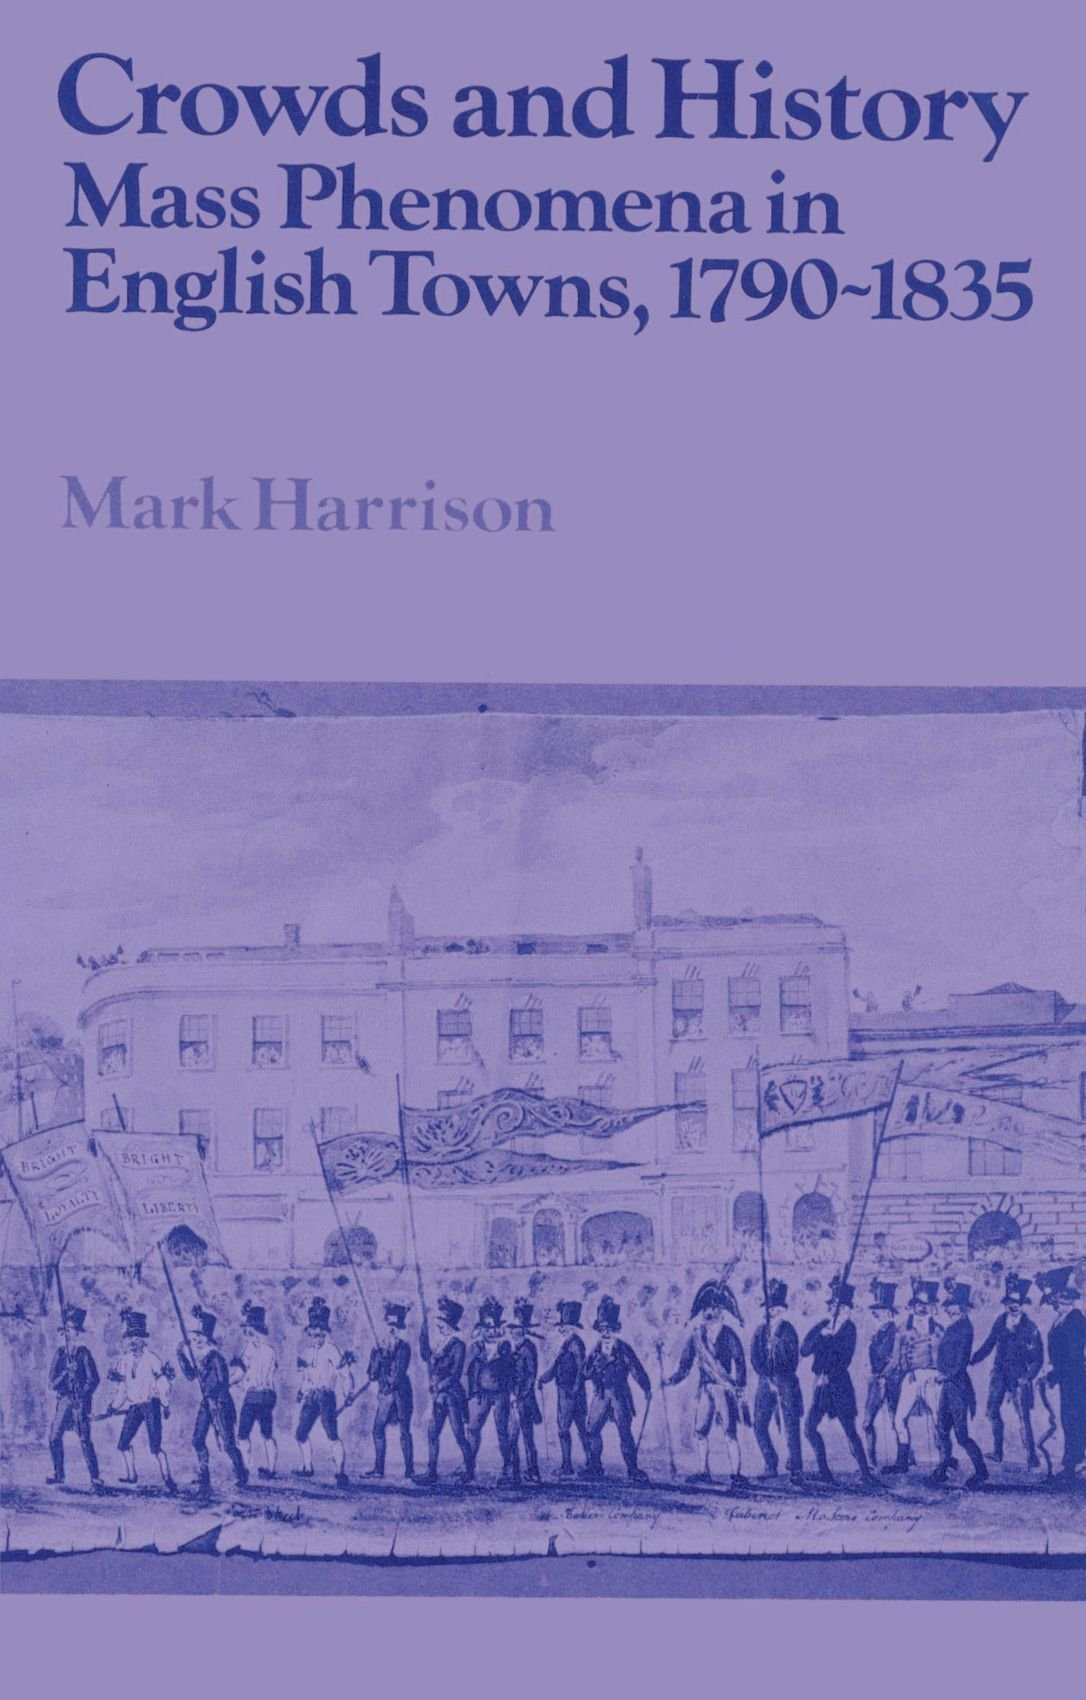 Crowds and History: Mass Phenomena in English Towns, 1790-1835 (Past and Present Publications) ebook